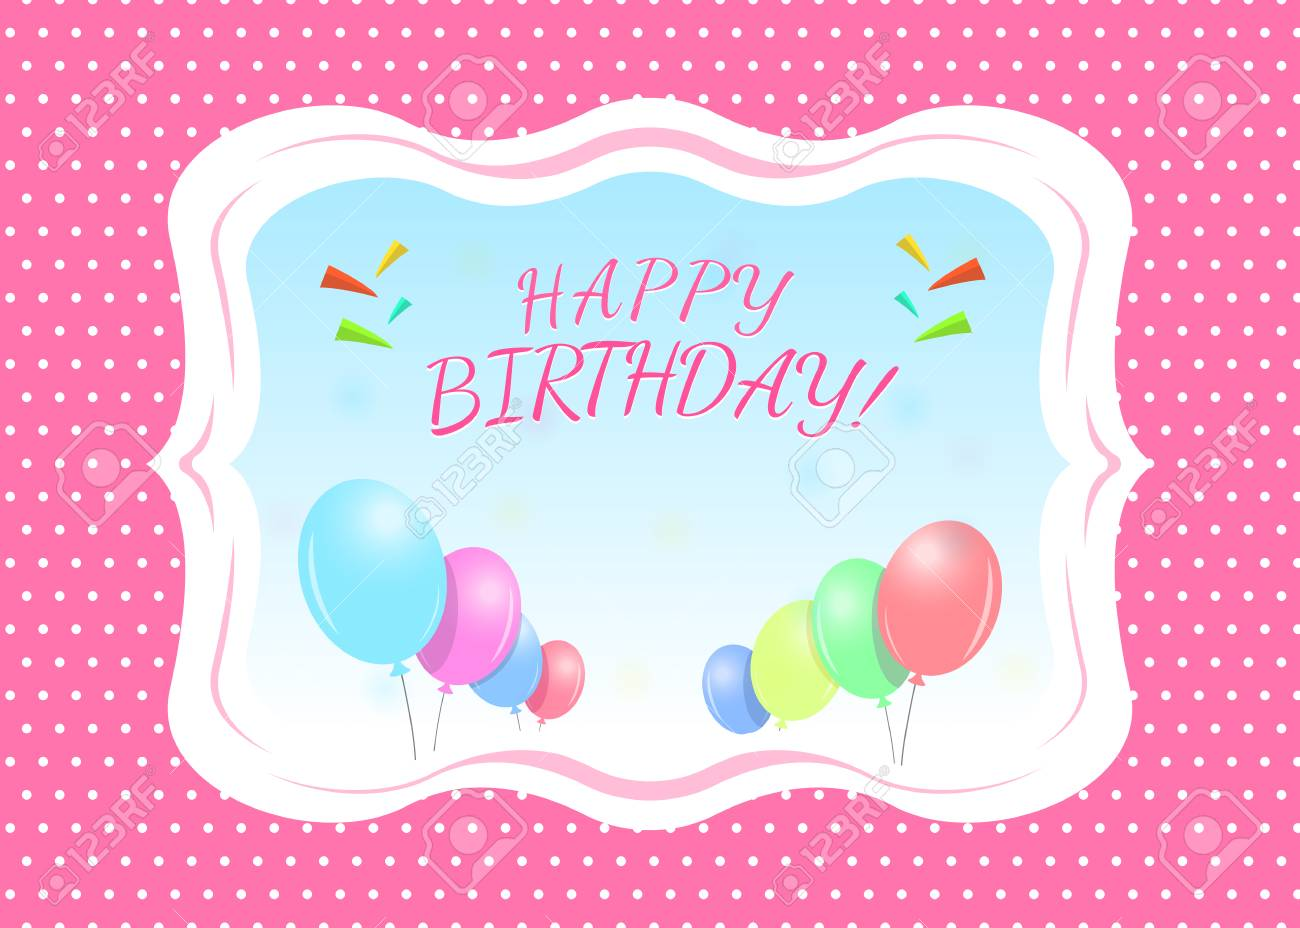 Magnificent Happy Birthday Greeting Card Template With A Place For Name Funny Birthday Cards Online Inifofree Goldxyz